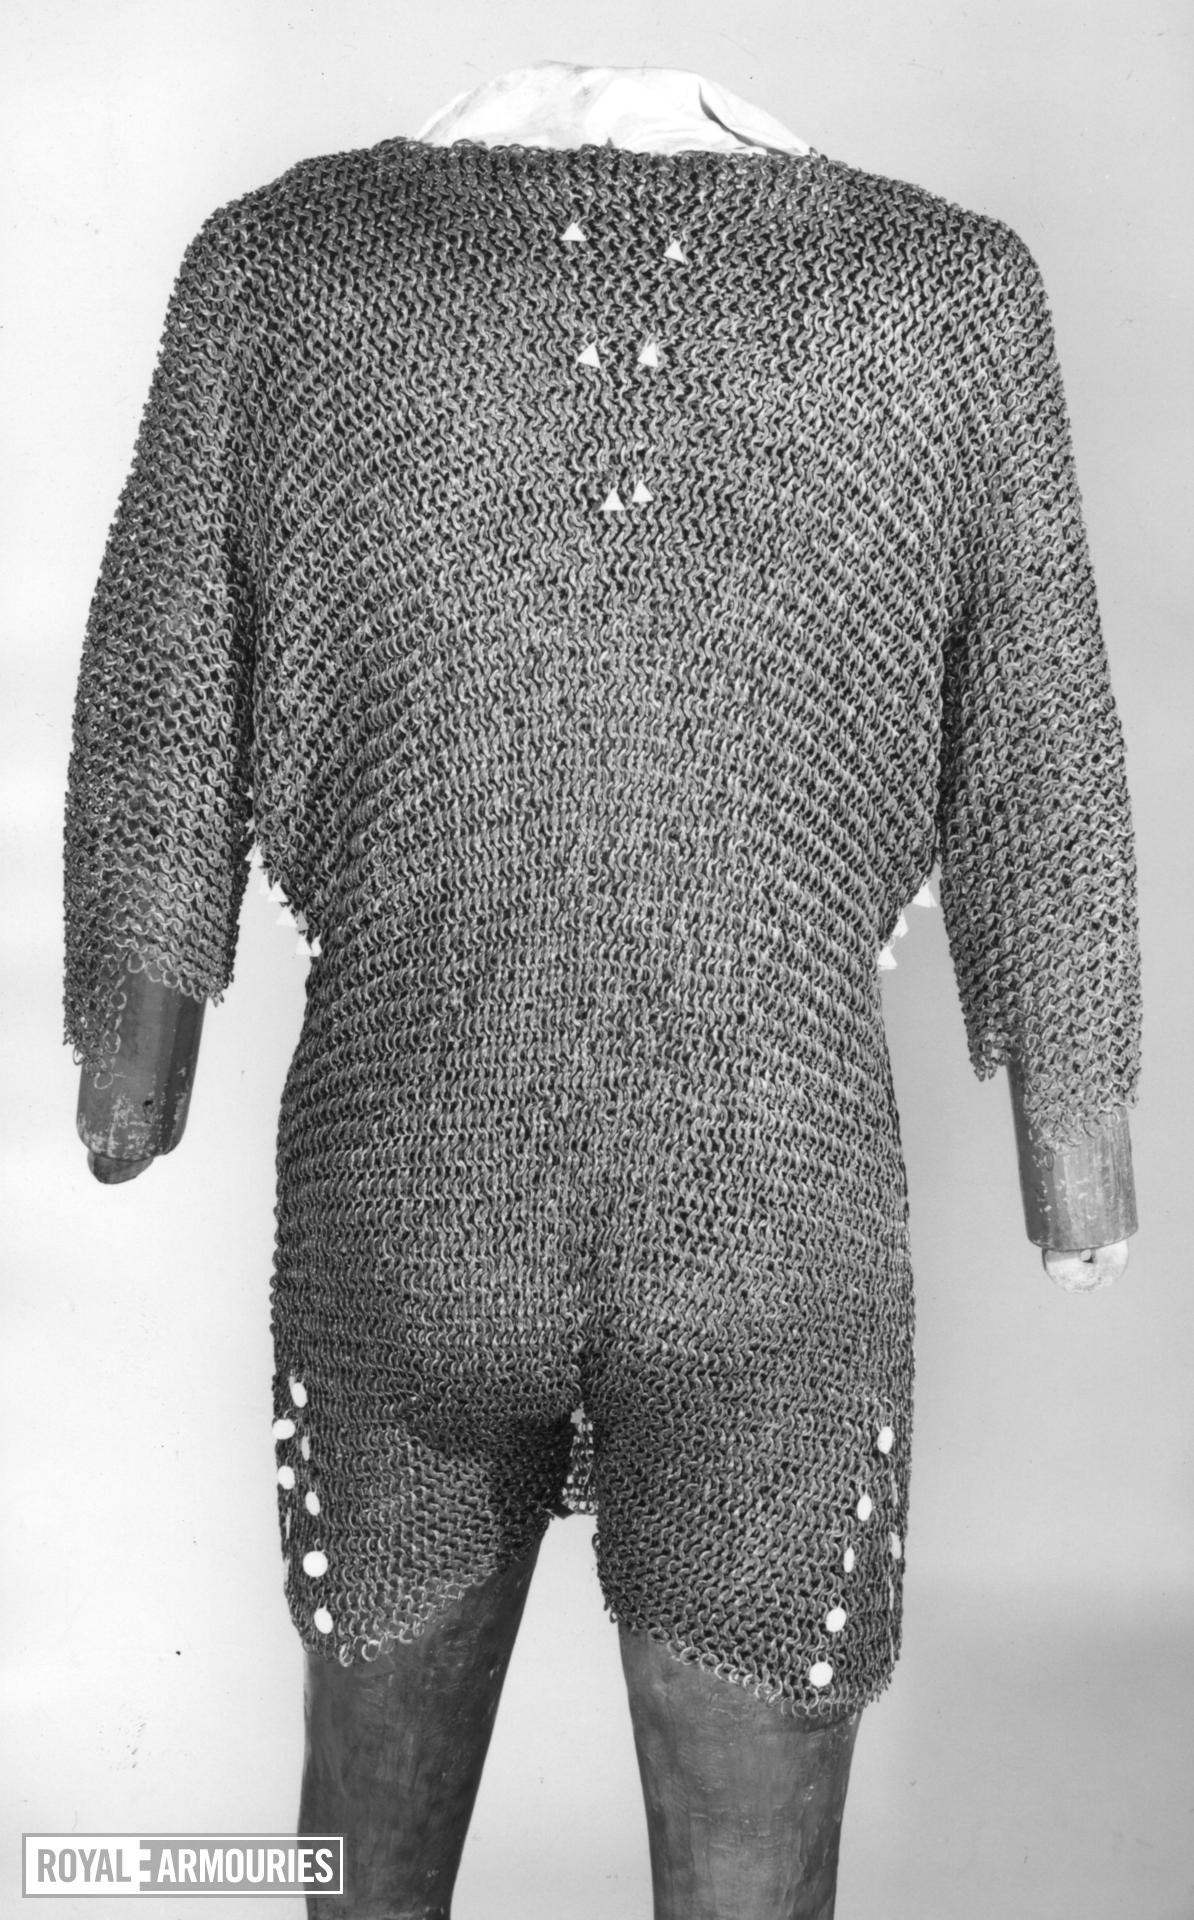 Mail shirt. German, Iserlohn, about 1430. Made by Bertolt vor Parte (III.1320)